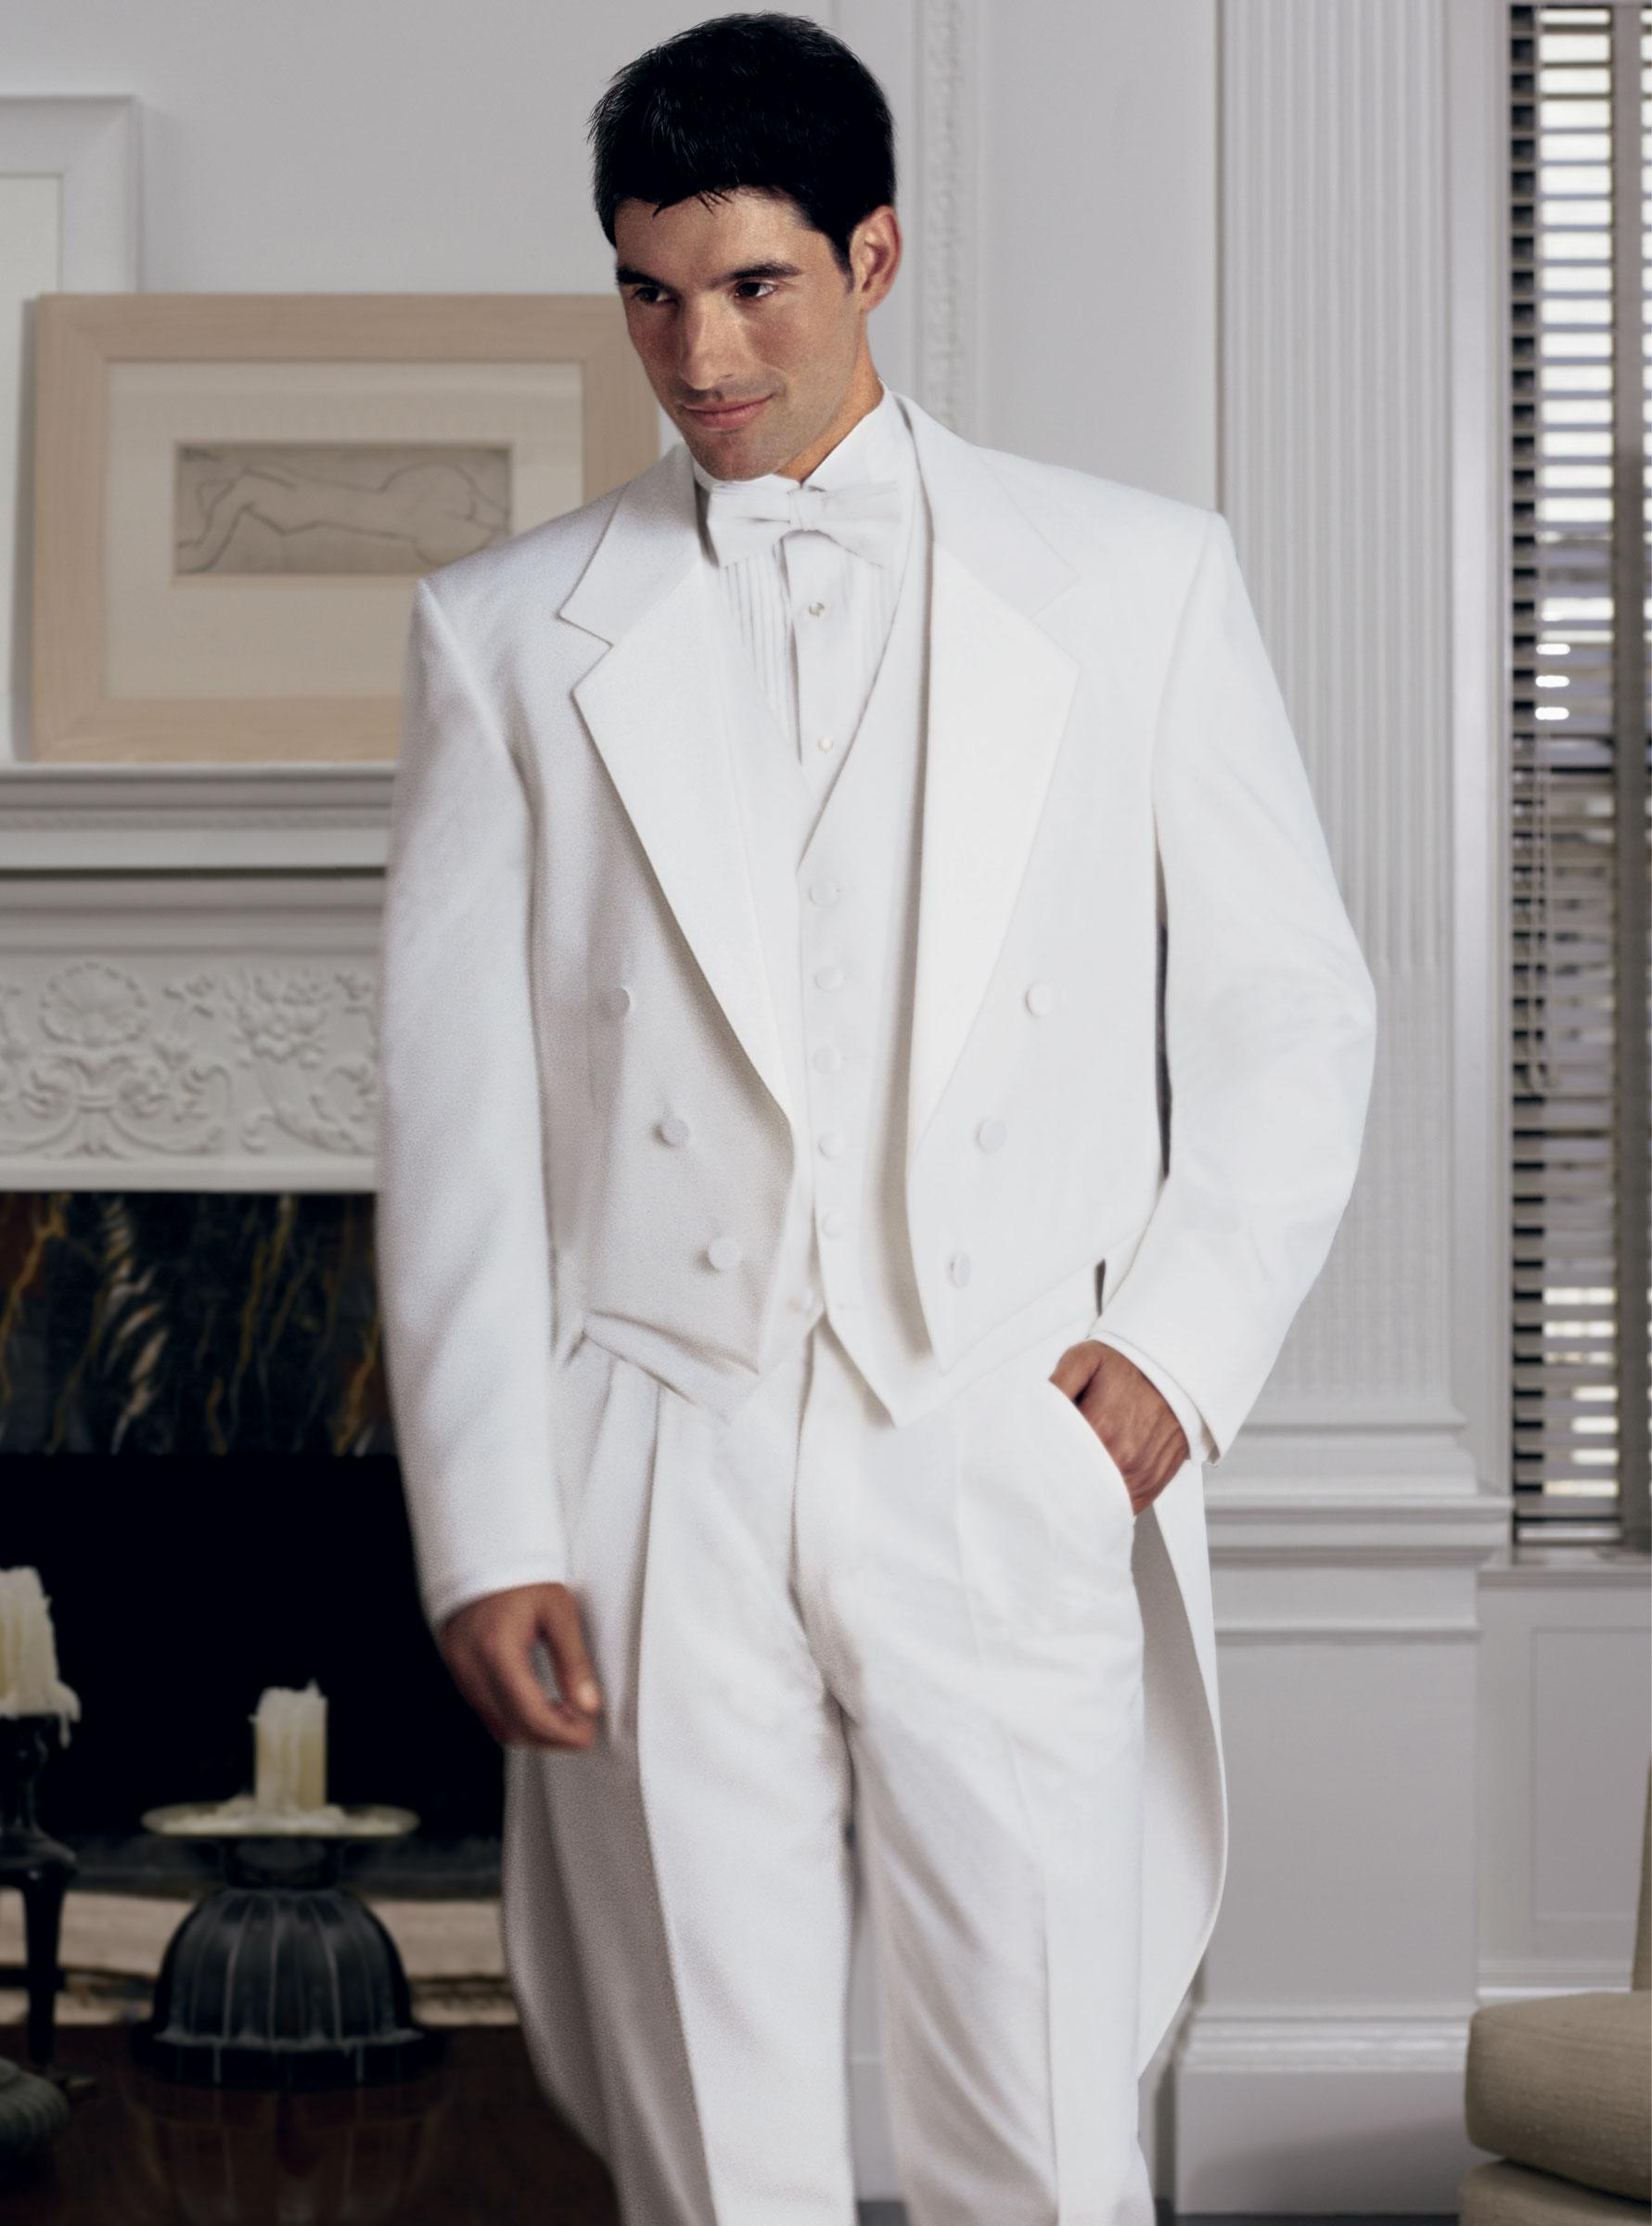 The pretty and modern mens suits for wedding Wedding purposes are satisfied % when you buy a suit from mensusa and they have sale period and offers running in peak season or wedding time to make the best use.